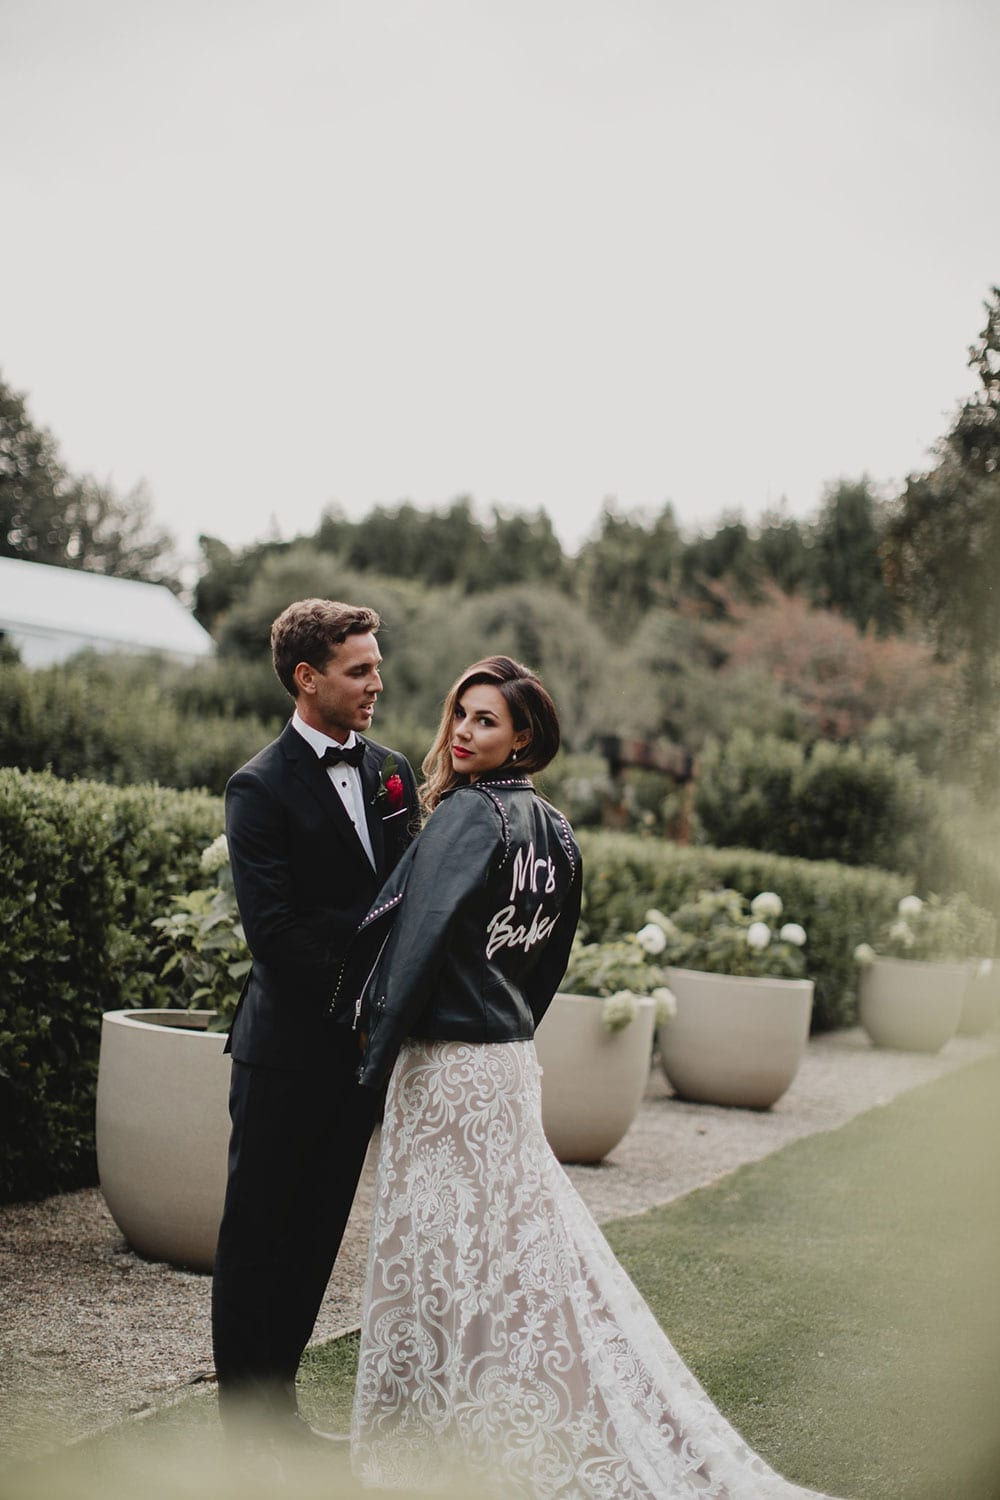 Real Weddings | Vinka Design | Real Brides Wearing Vinka Gowns | Amber and Rhys in gardens showing beautiful detail of train of custom made wedding dress